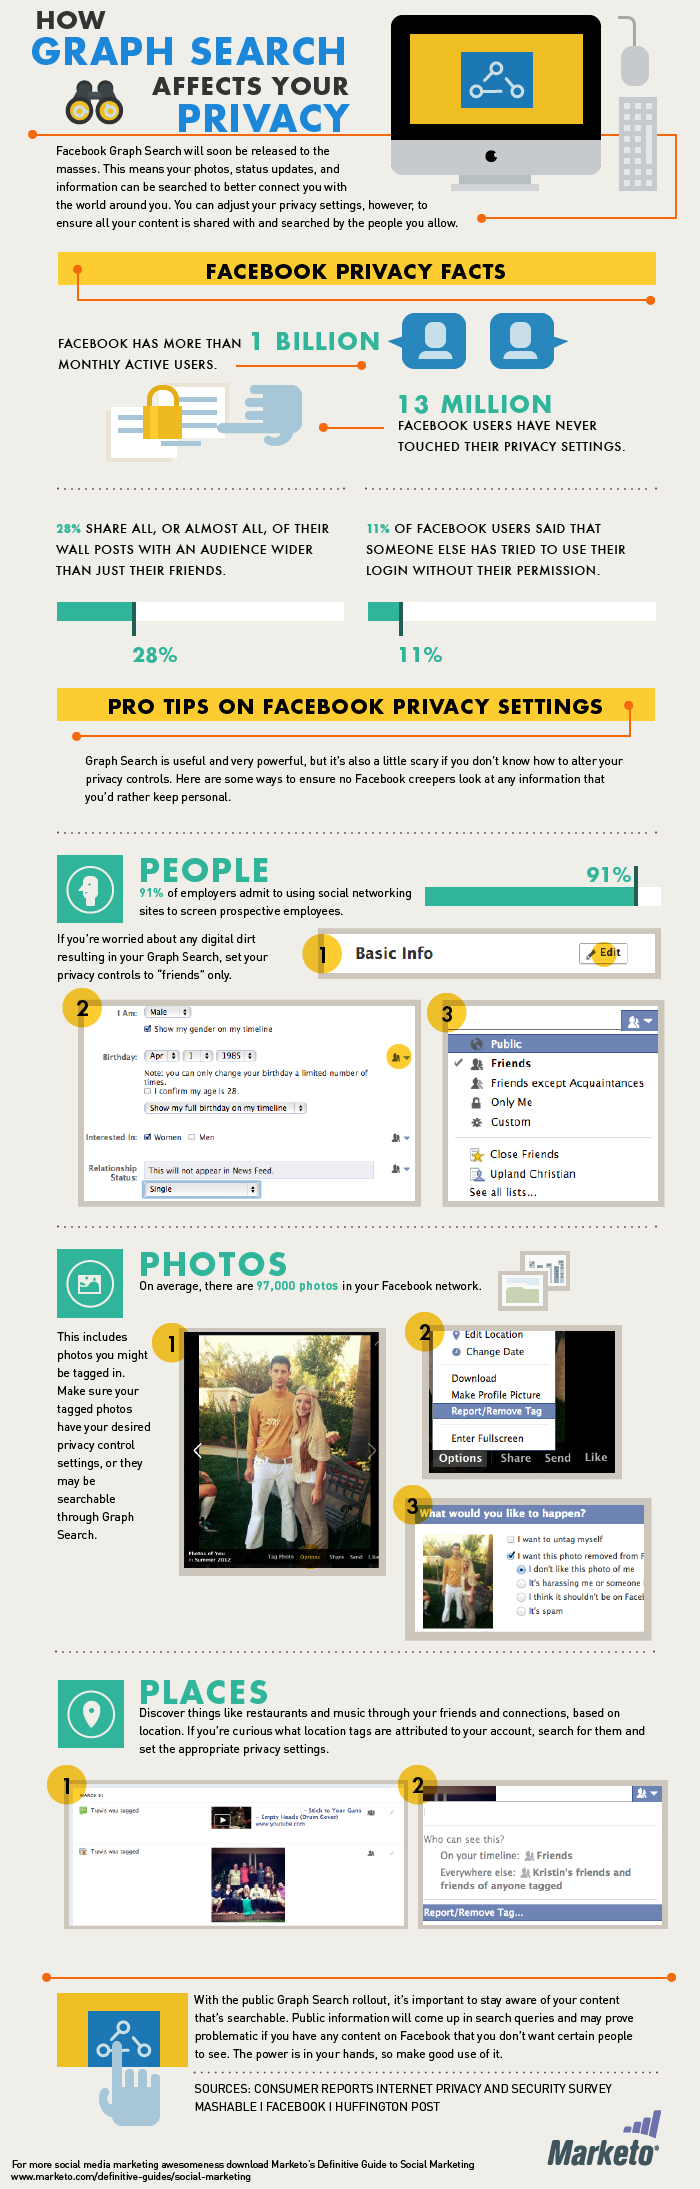 INFOGRAPHIC: How Facebook Graph Search Affects Your #Privacy